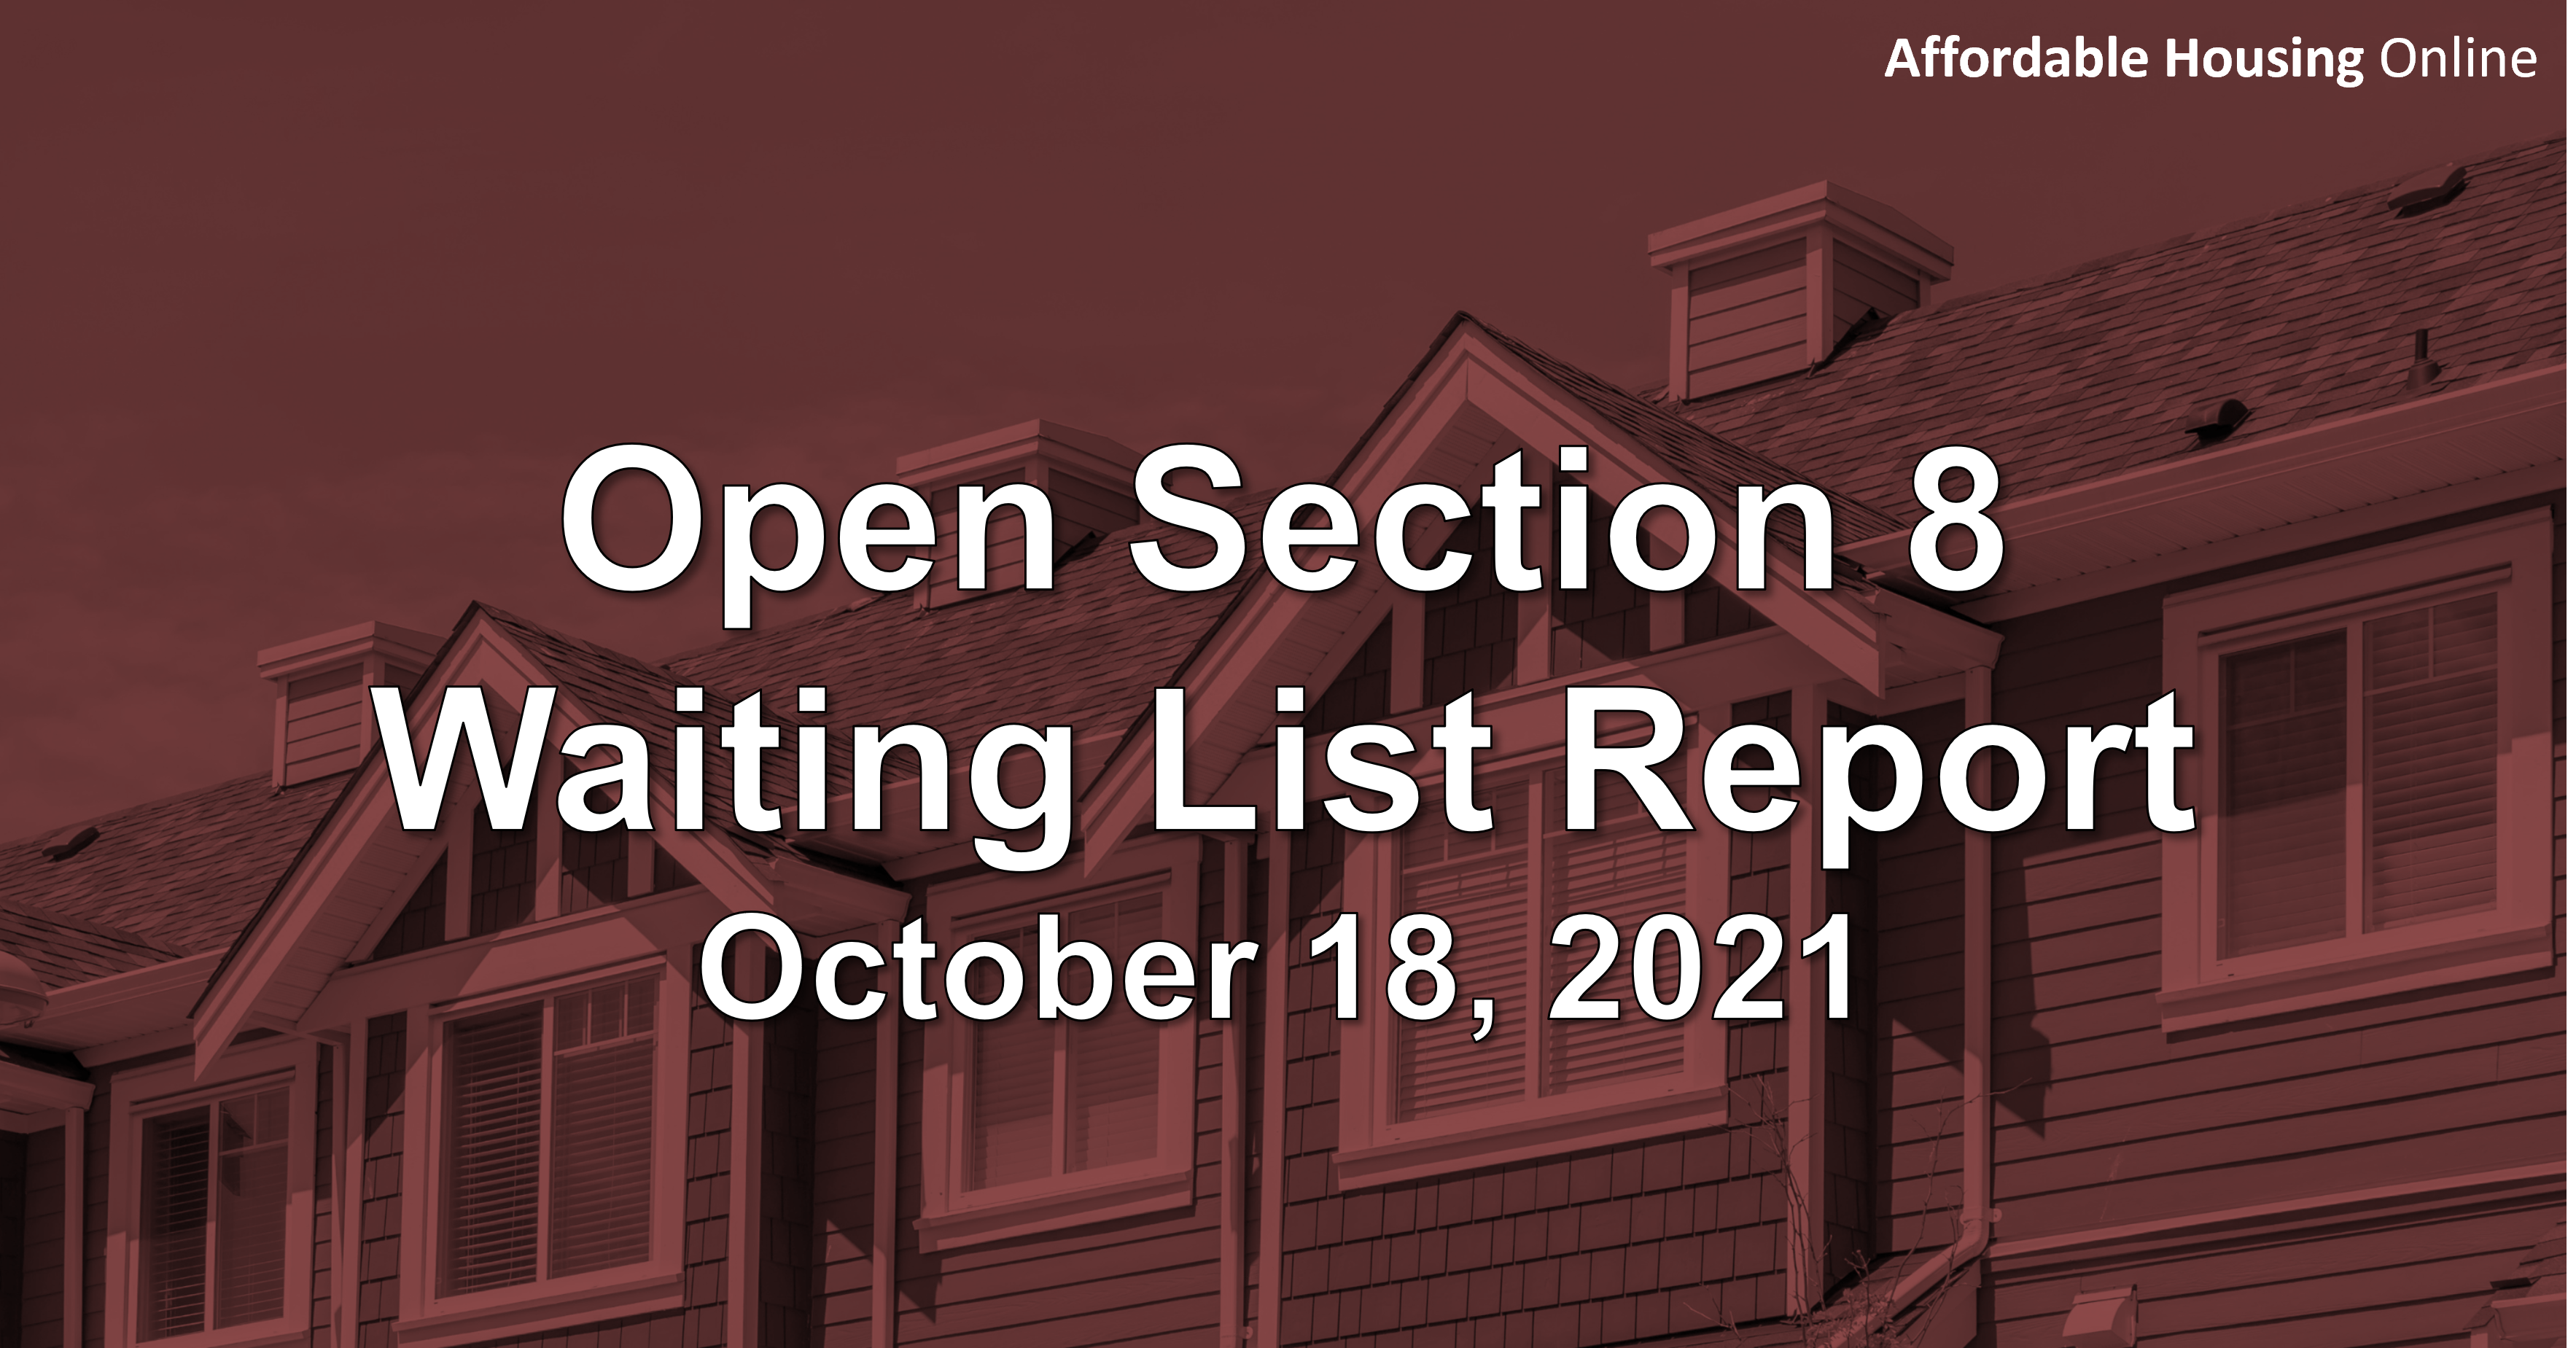 Open Section 8 Waiting List Report: October 18, 2021